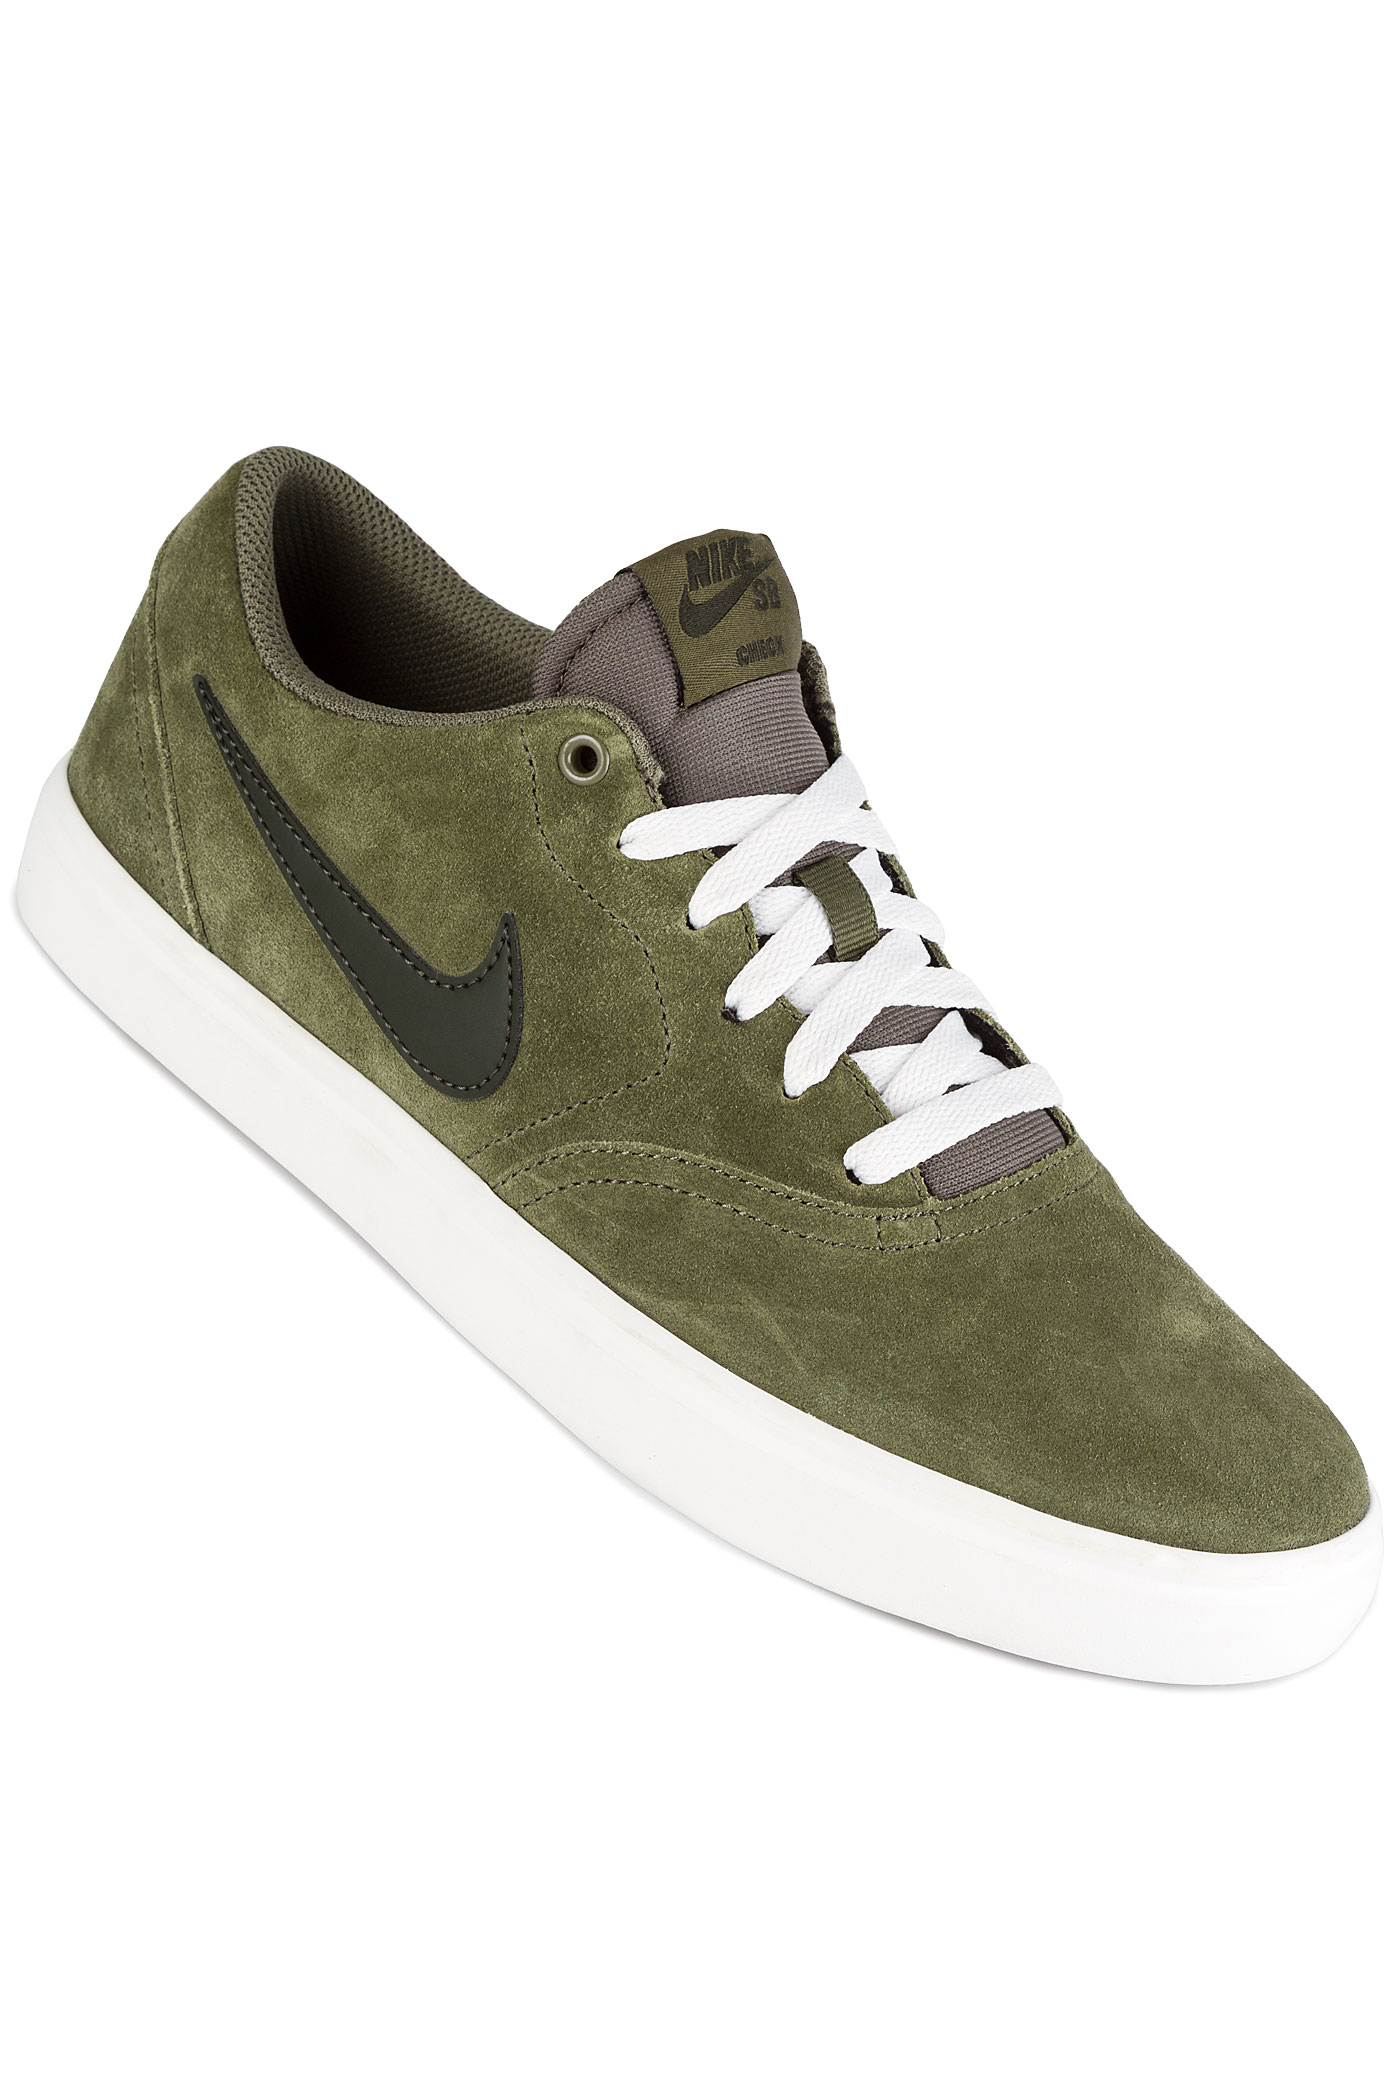 nike sb check solarsoft chaussure medium olive sequoia achetez sur skatedeluxe. Black Bedroom Furniture Sets. Home Design Ideas